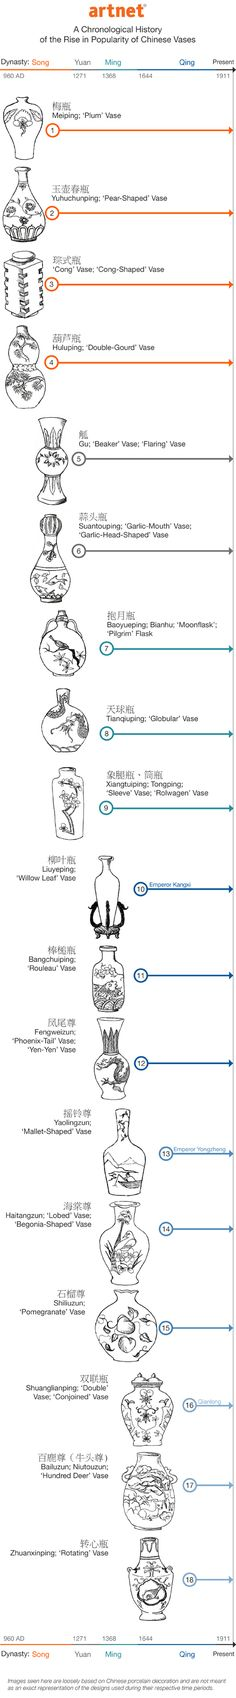 ¤ Chinese Vase infographic | A Beginner's Guide to Chinese Porcelain Vase Shapes Helen Bu, Tuesday, July 15, 2014